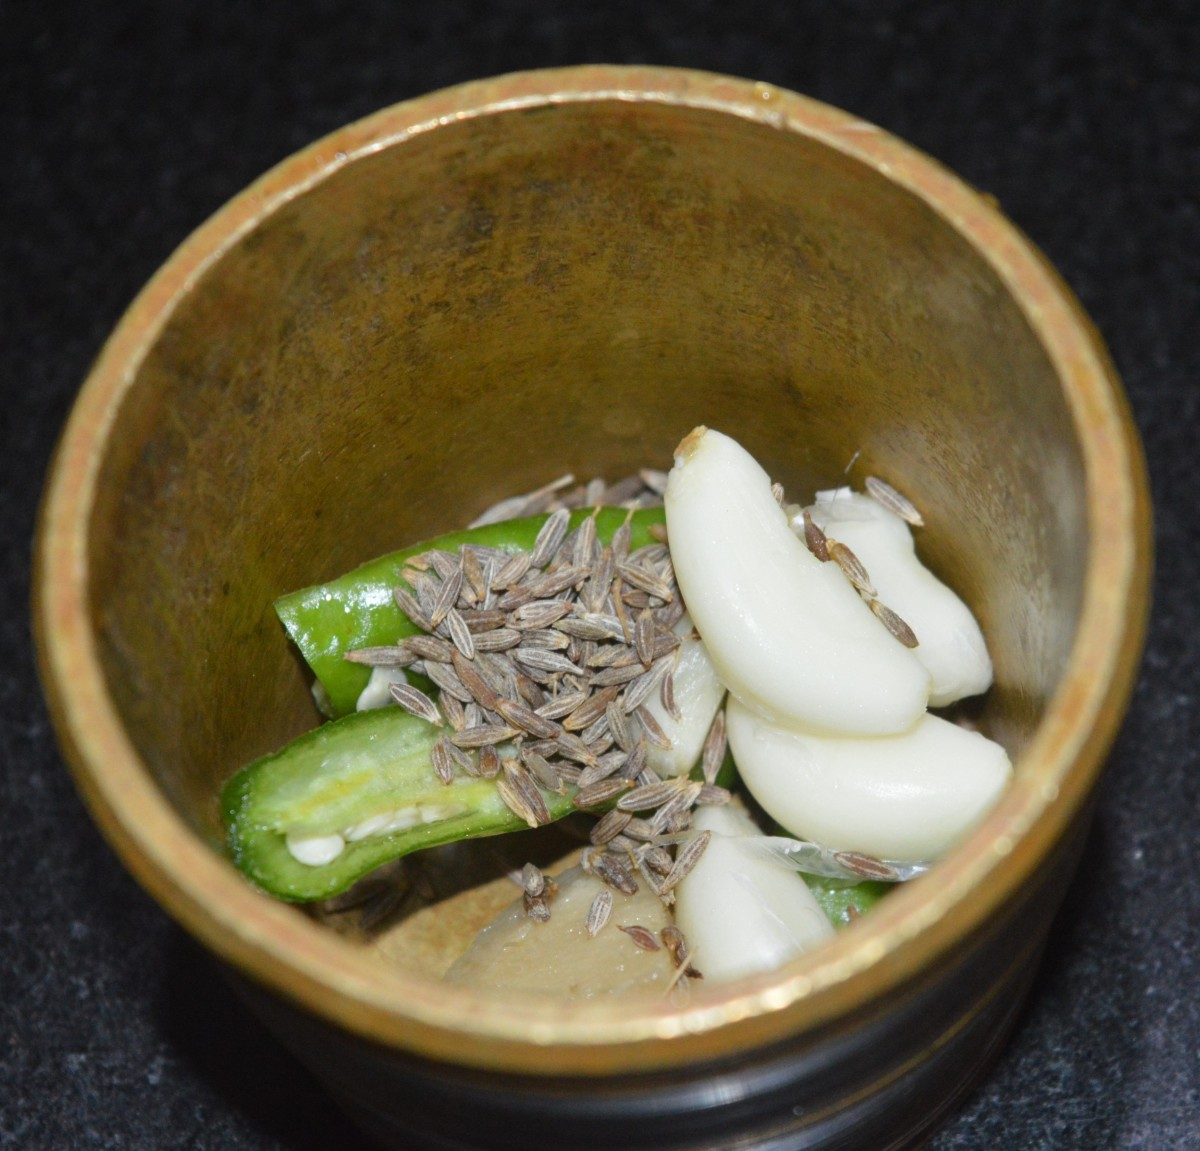 Step two: Add garlic cloves, cumin, ginger, and green chilies to a mortar and pestle. Make a coarse paste.